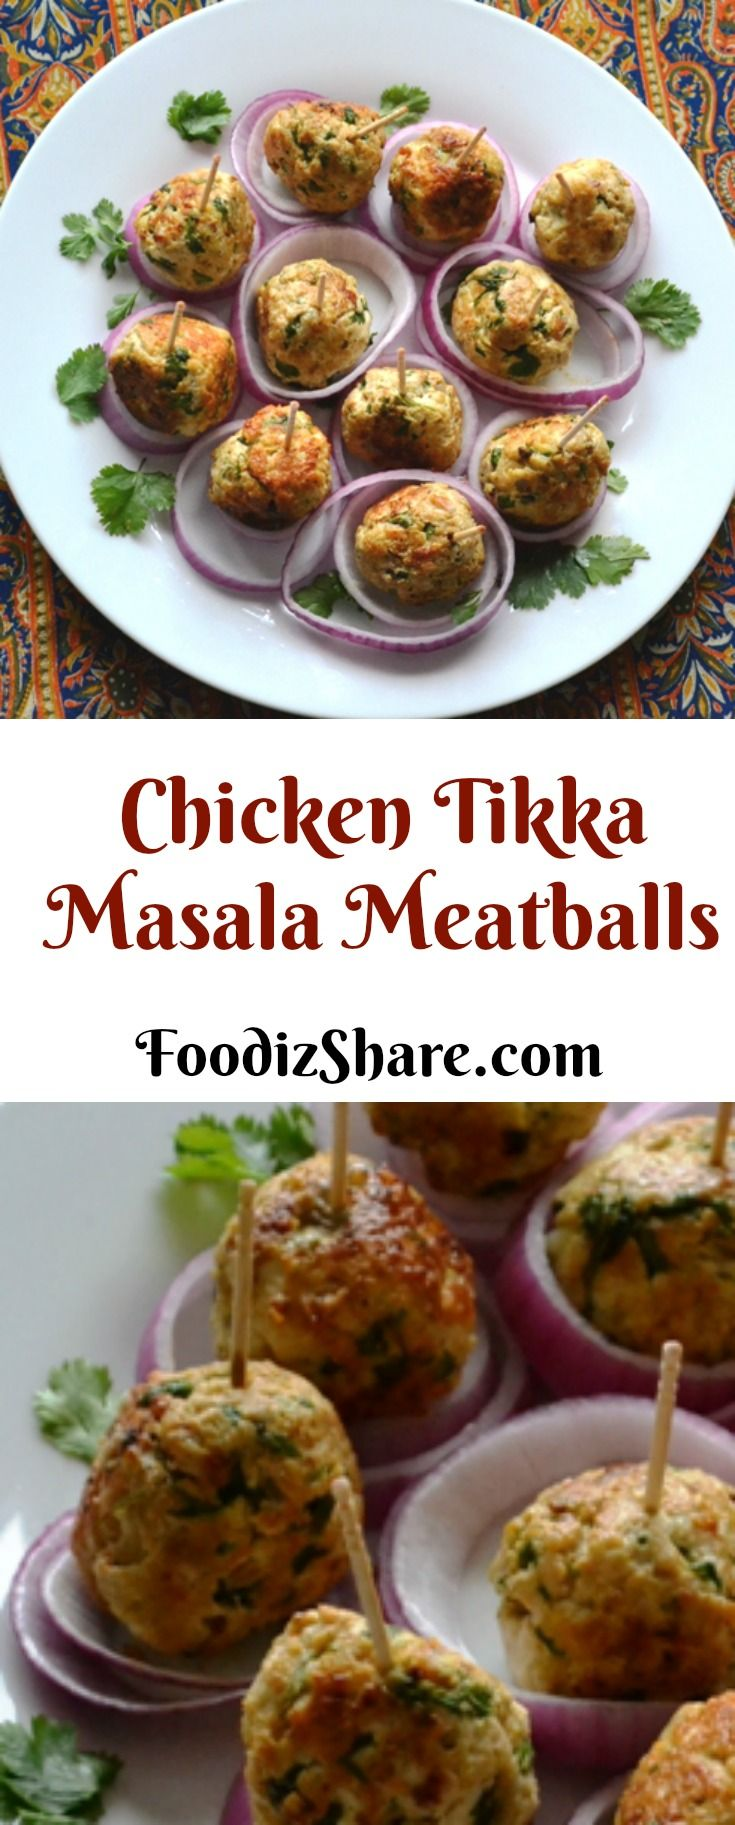 These chicken tikka masala flavored meatballs make a terrific appetizer. #recipes #food  #appetizer